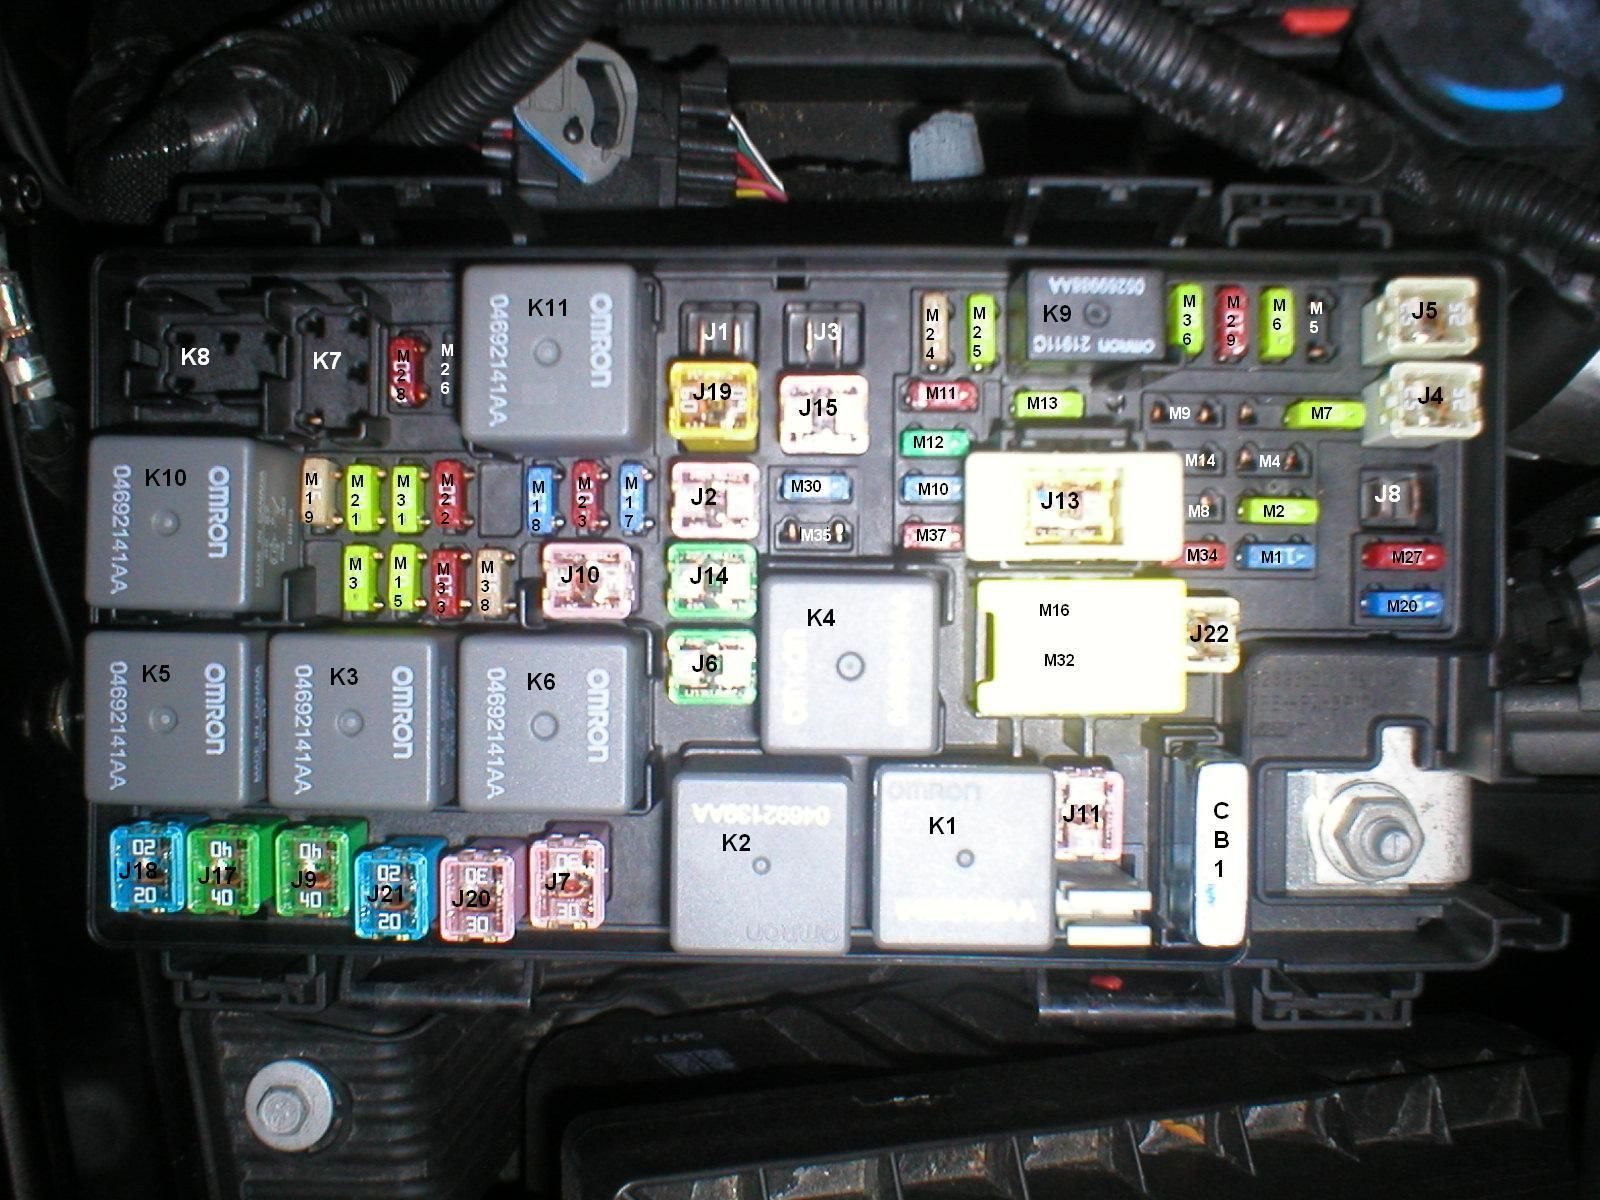 jeep tj rubicon fuse box wiring diagram schematics 1997 jeep wrangler fuse box jeep jk fuse [ 1600 x 1200 Pixel ]